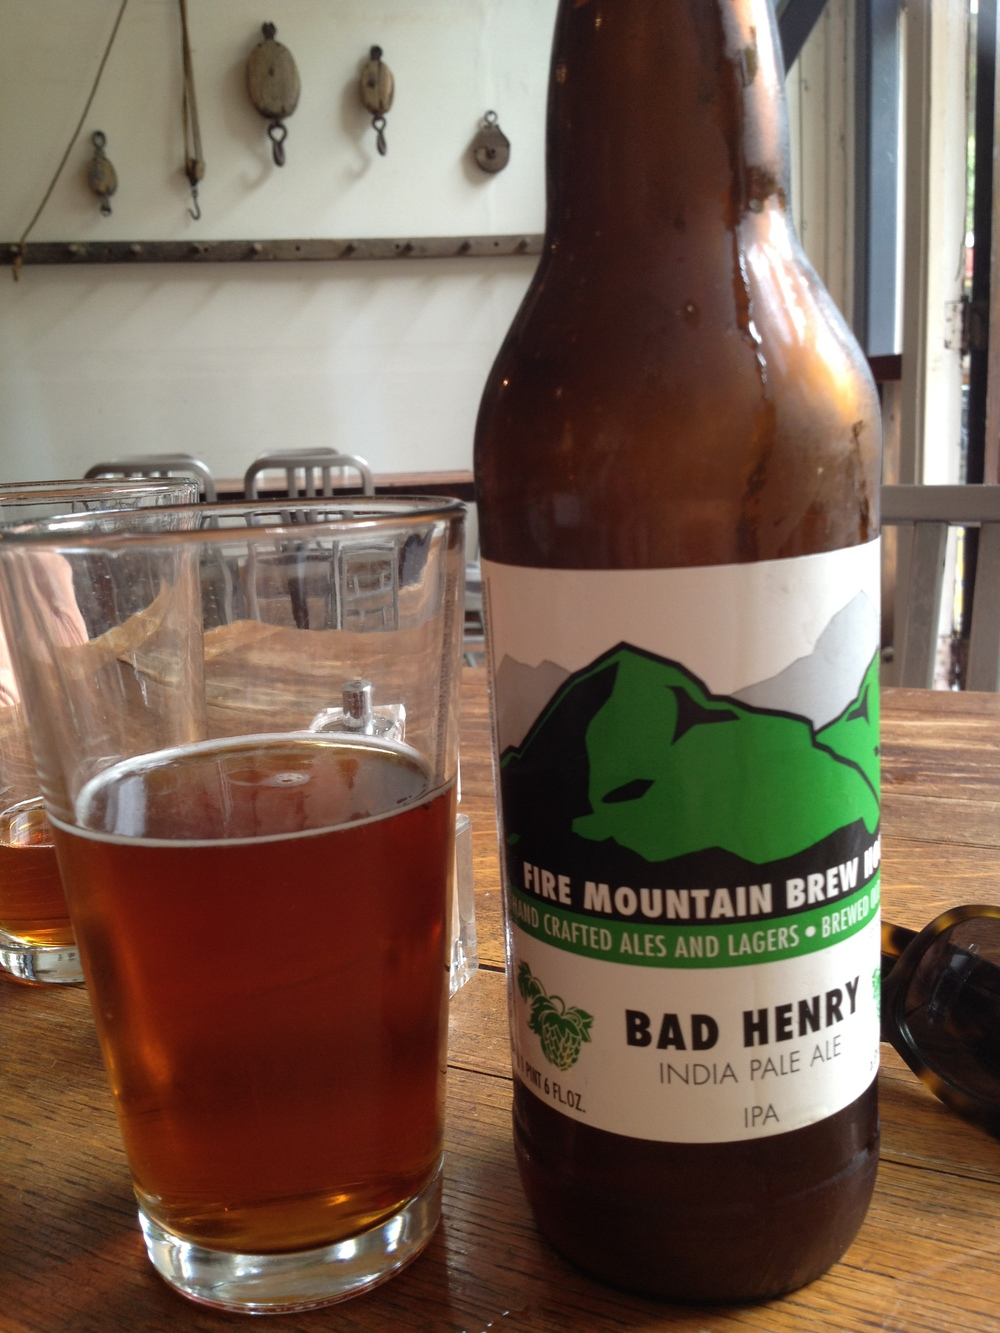 Best beer of the trip: Bad Henry IPA by Fire Mountain Brewery in Carlton, Oregon